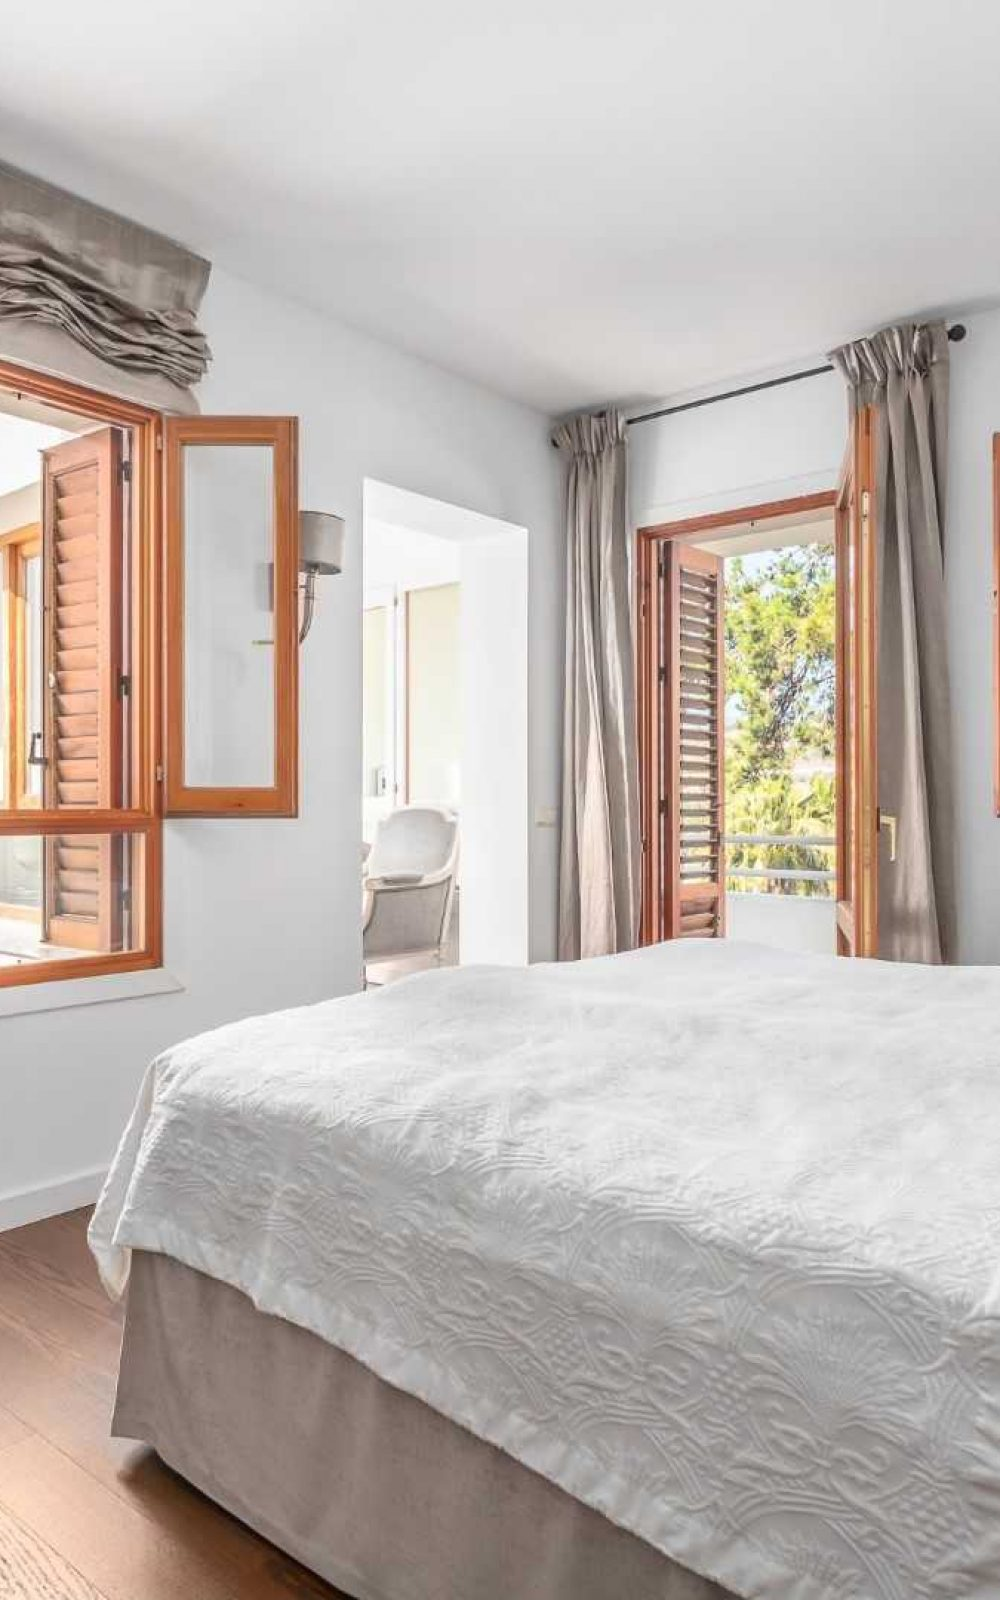 Alcores 532-NFH-04Bedroom-01 (Large)